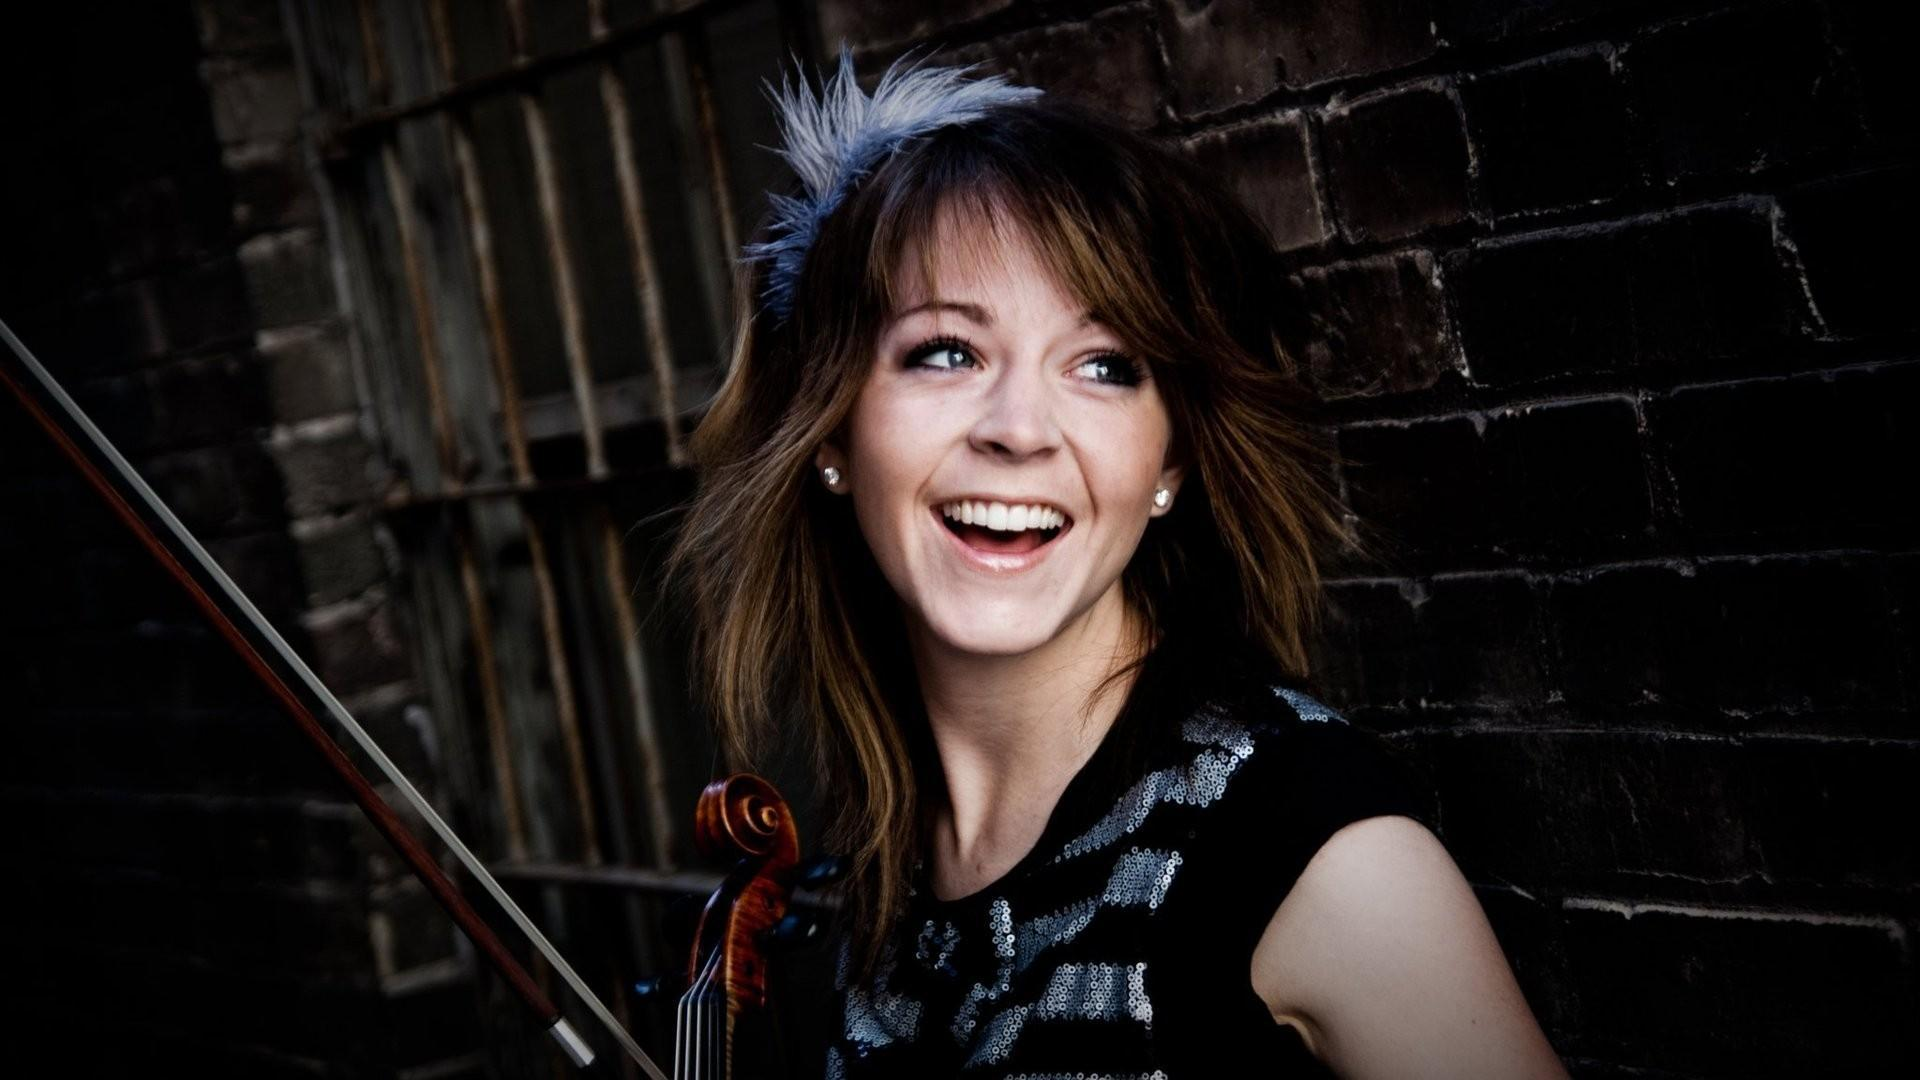 Do you like Lindsey Stirling?